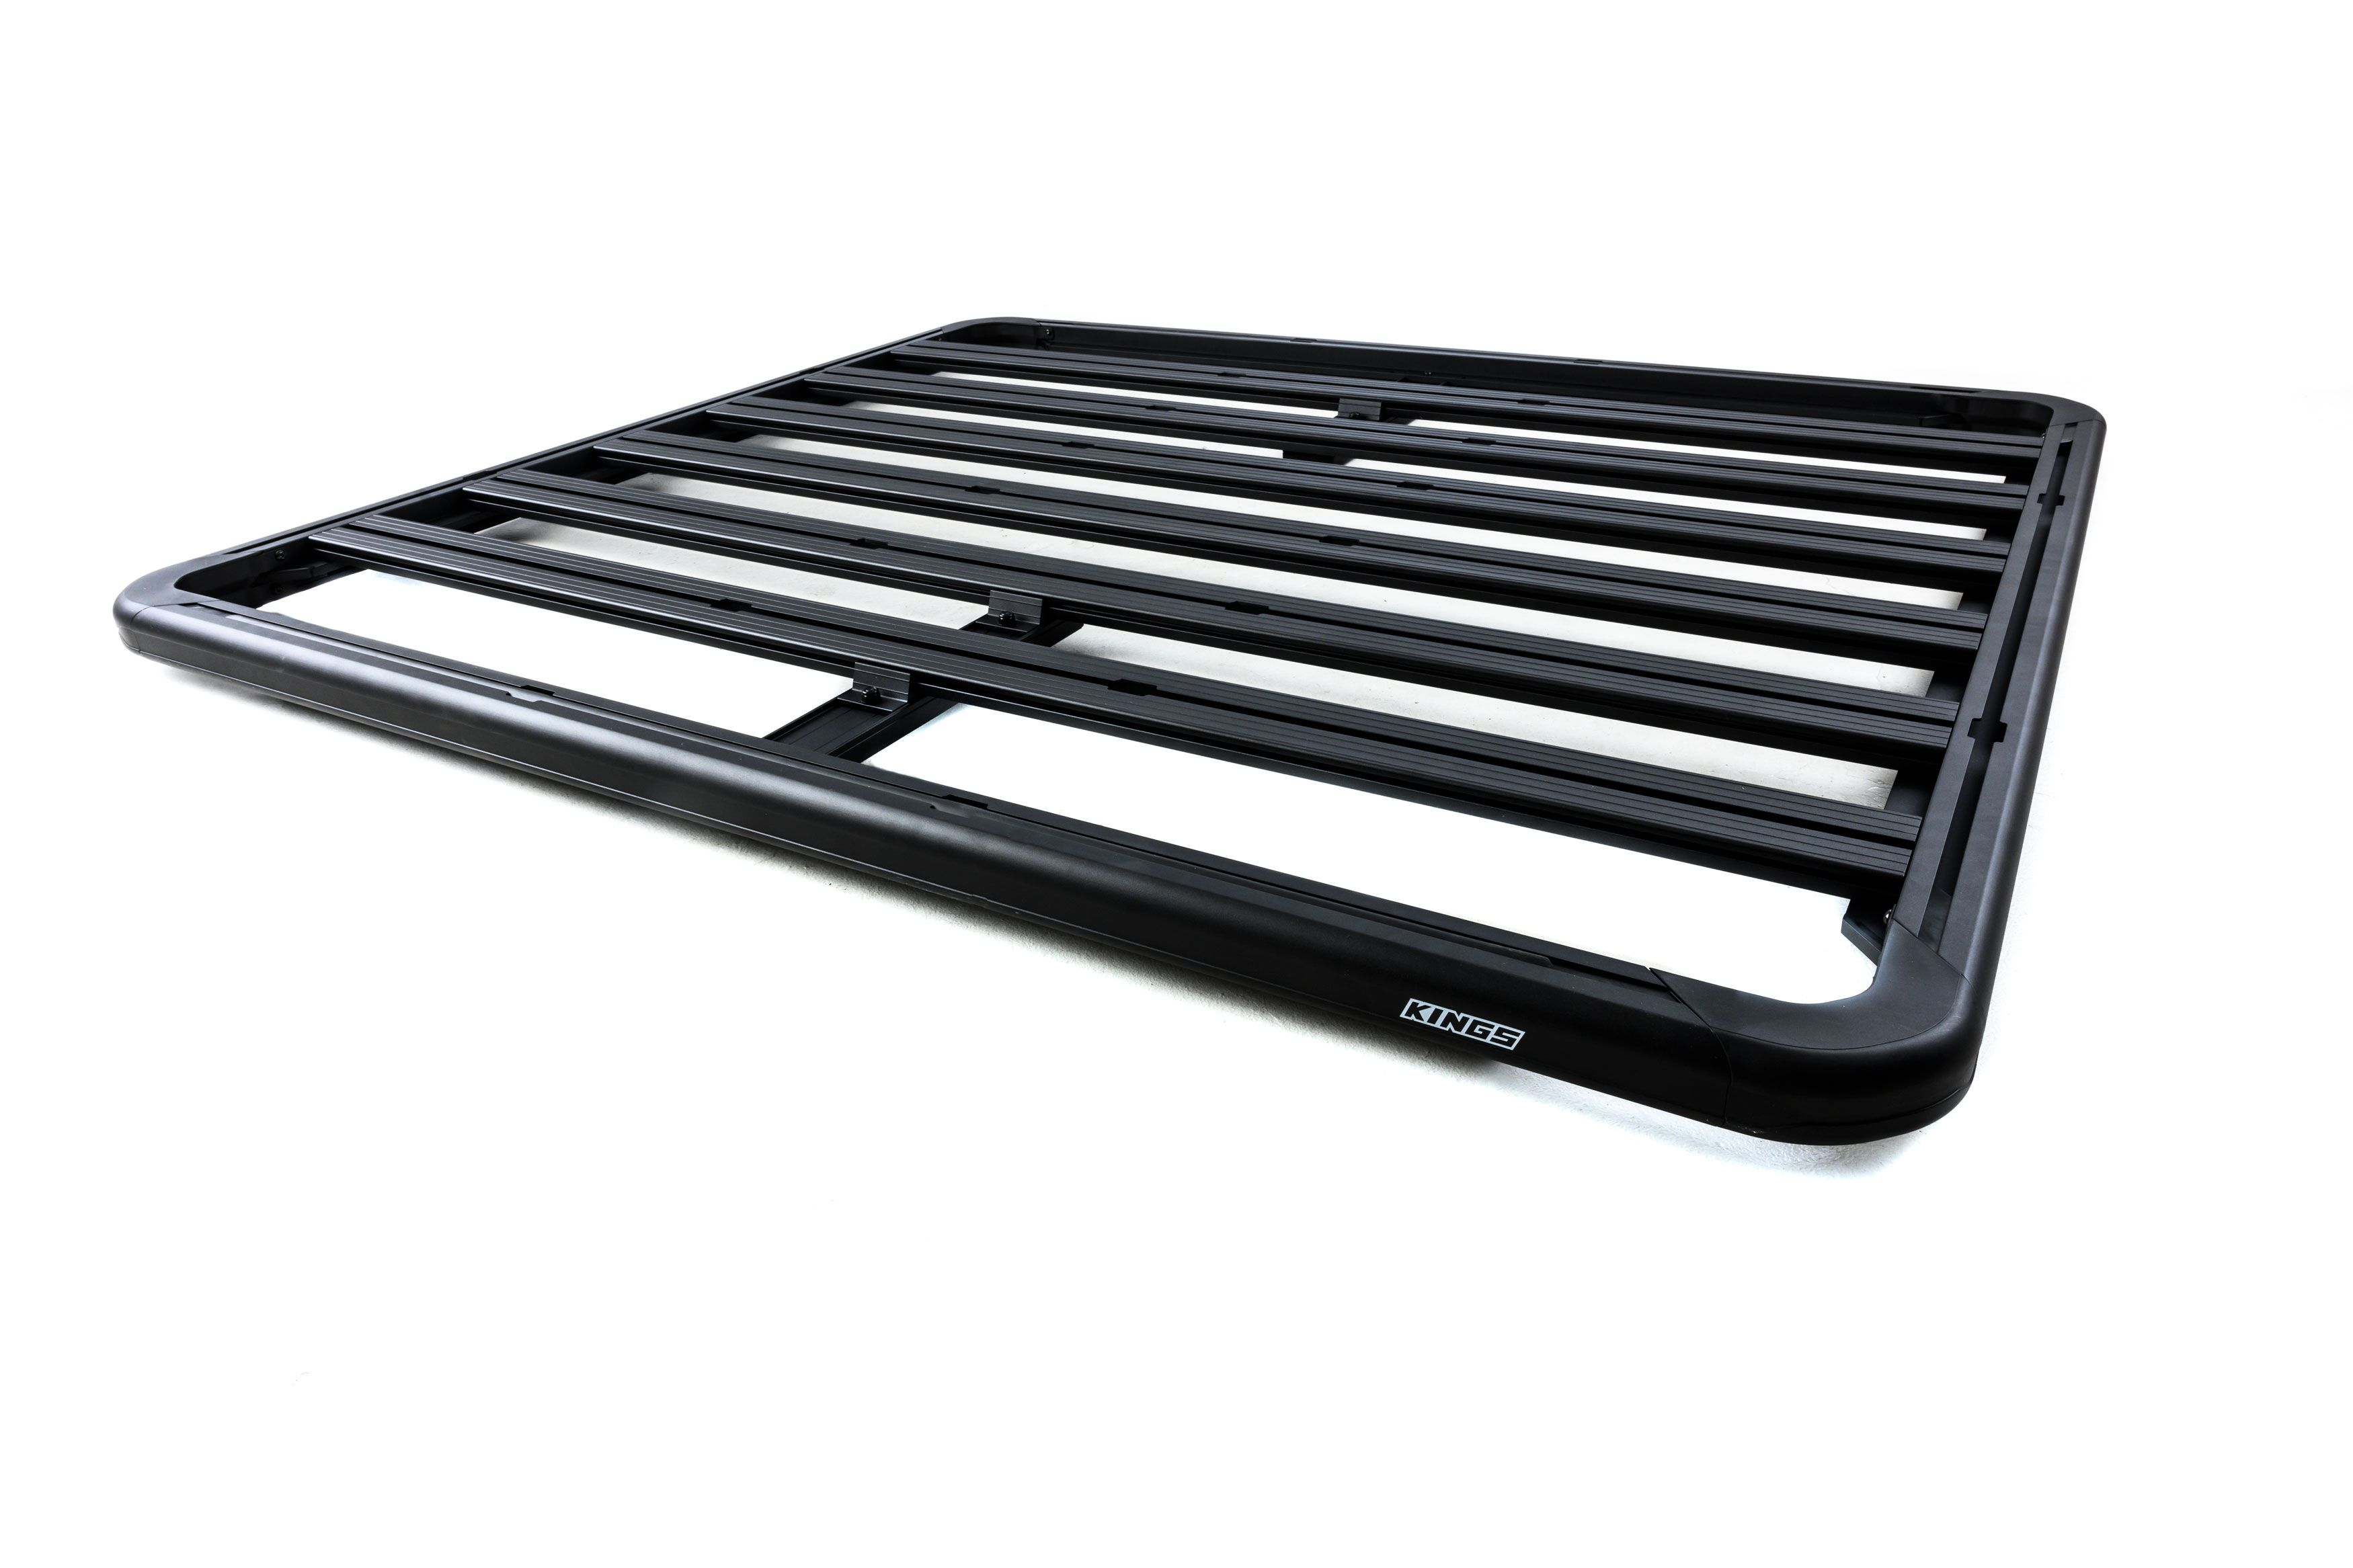 Adventure Kings Aluminium Platform Roof Rack Suitable for Nissan Navara NP300 D23 Dual-Cab 2015+